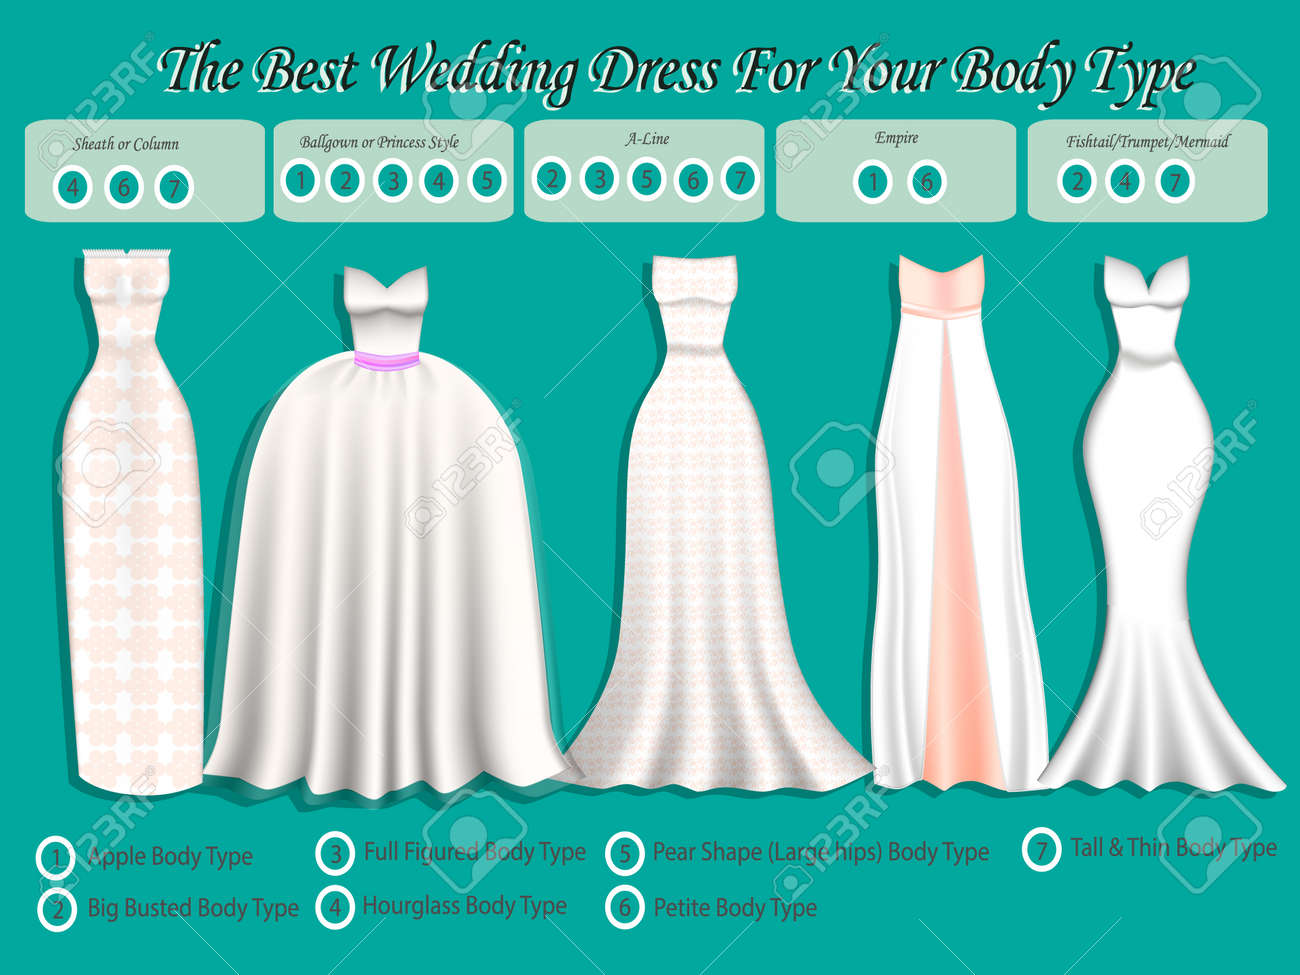 Wedding Dress For Body Type Wedding Dress Infographic Set Of